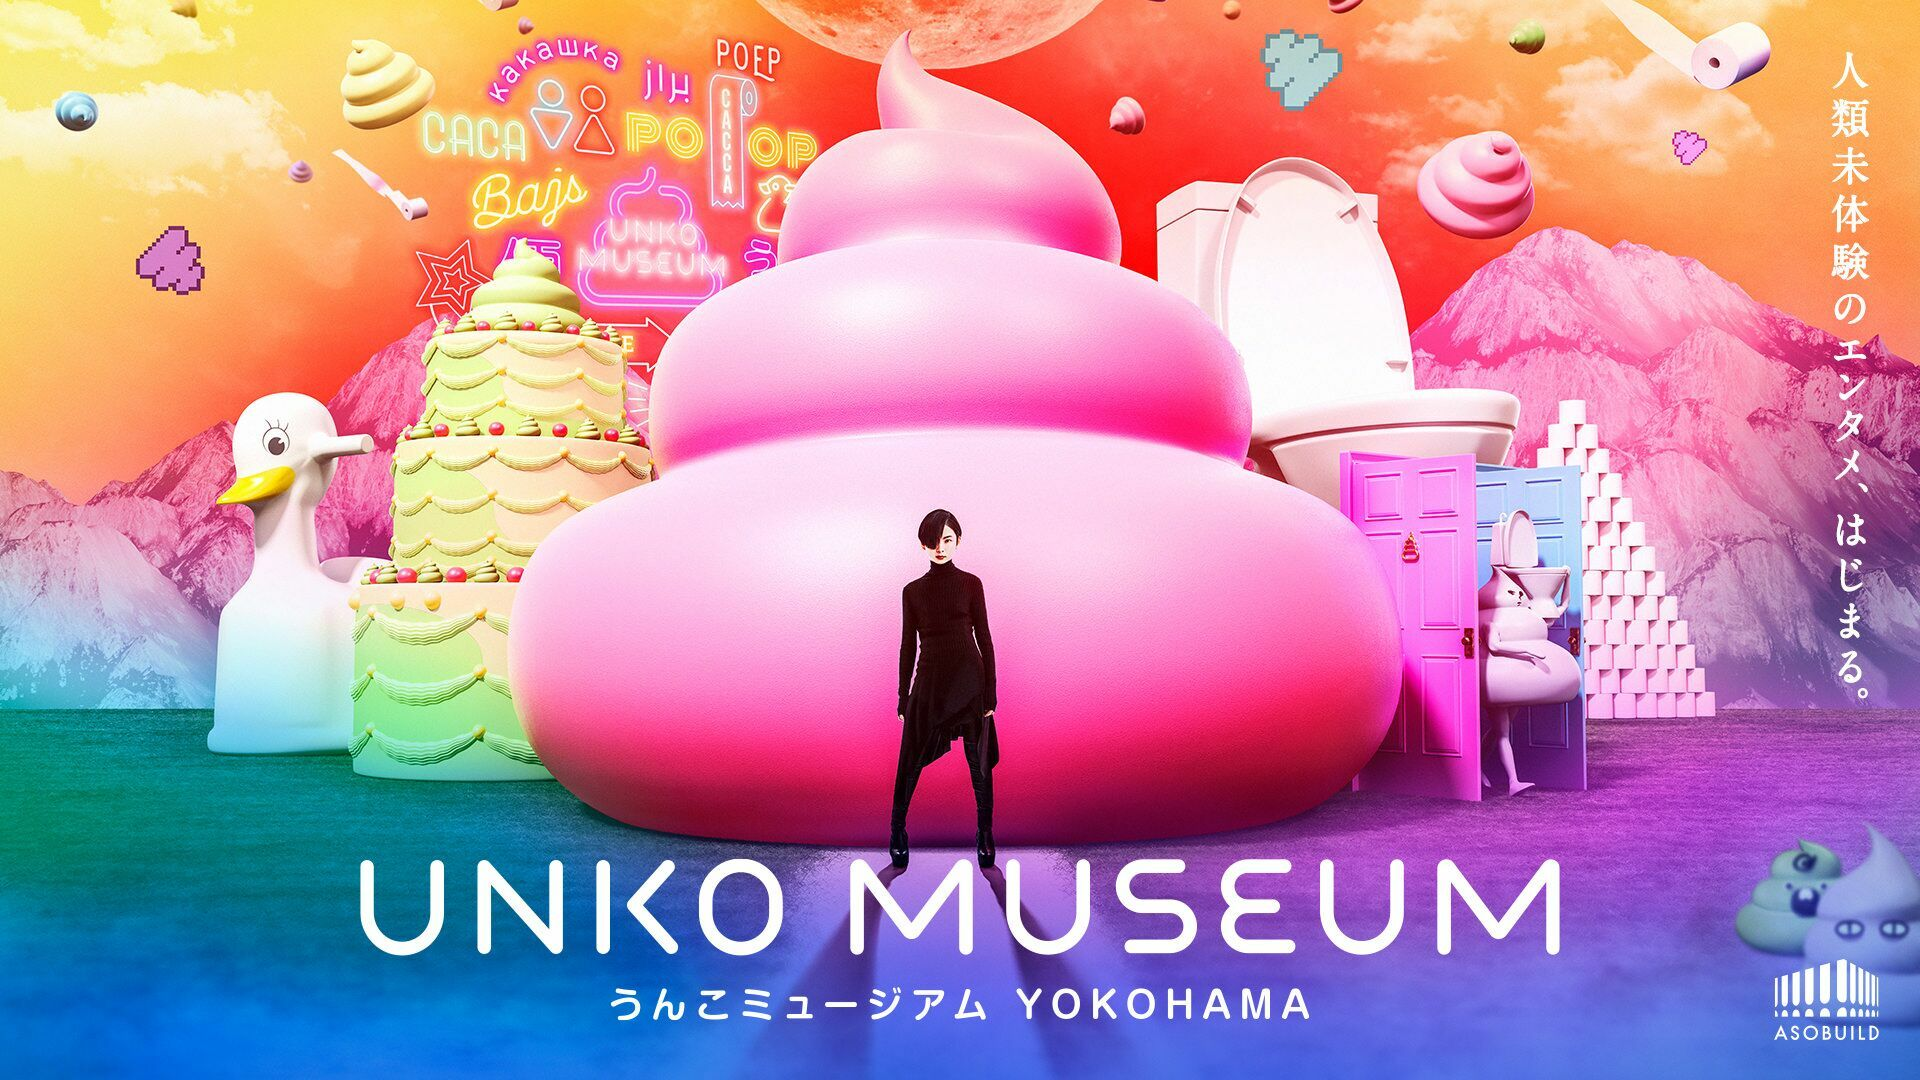 Poop Museum is opening in Yokohama this March